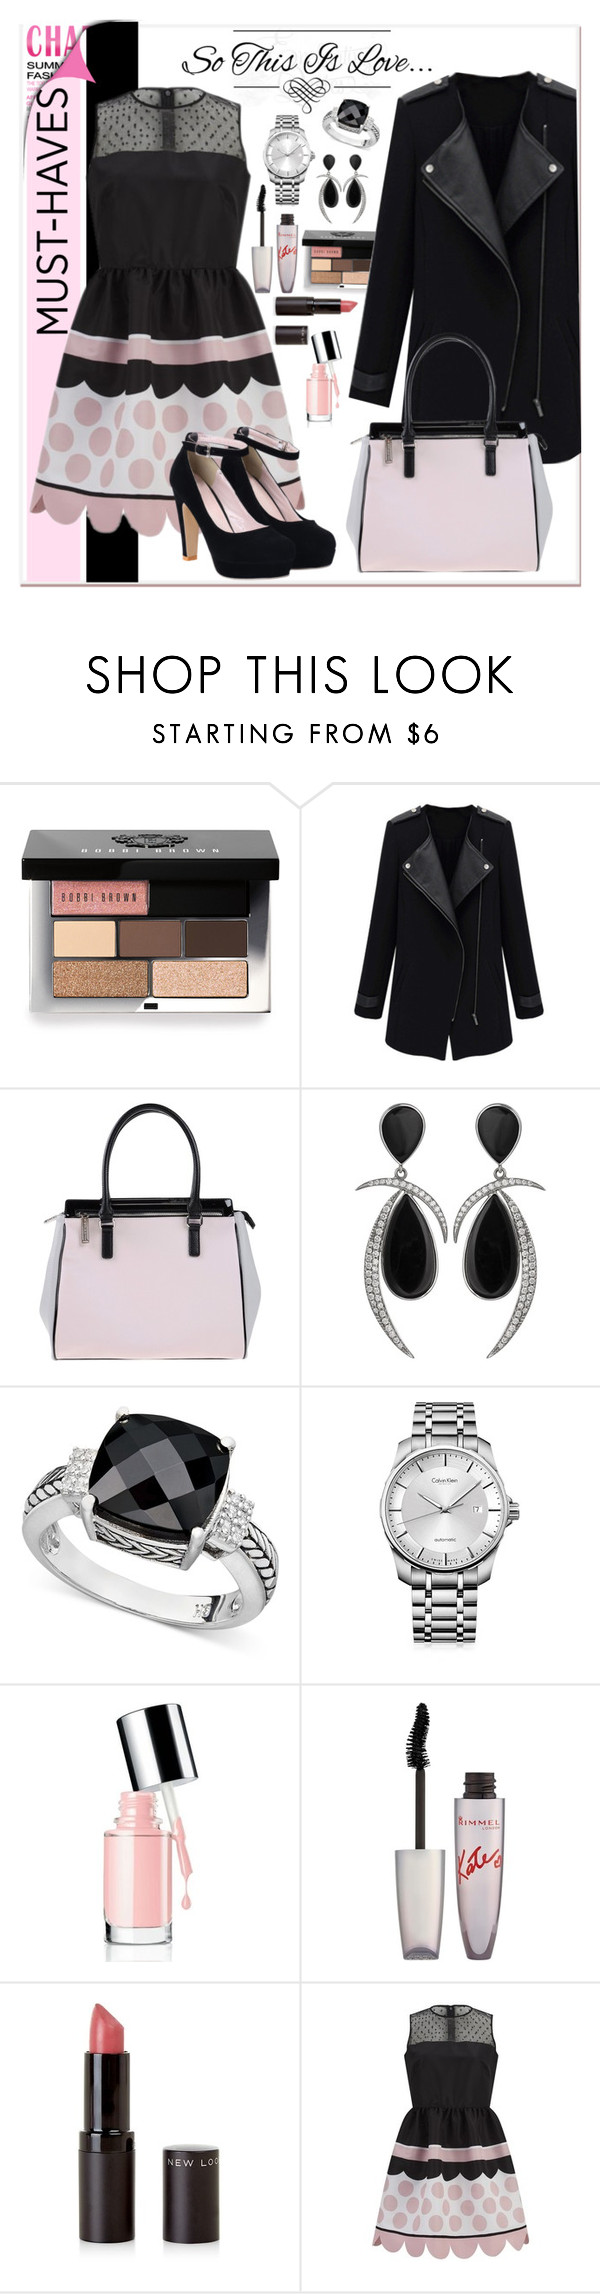 """""""must have"""" by ina-kis ❤ liked on Polyvore featuring Bobbi Brown Cosmetics, Versace, Jorge Adeler, Effy Jewelry, Calvin Klein, Rimmel and RED Valentino"""